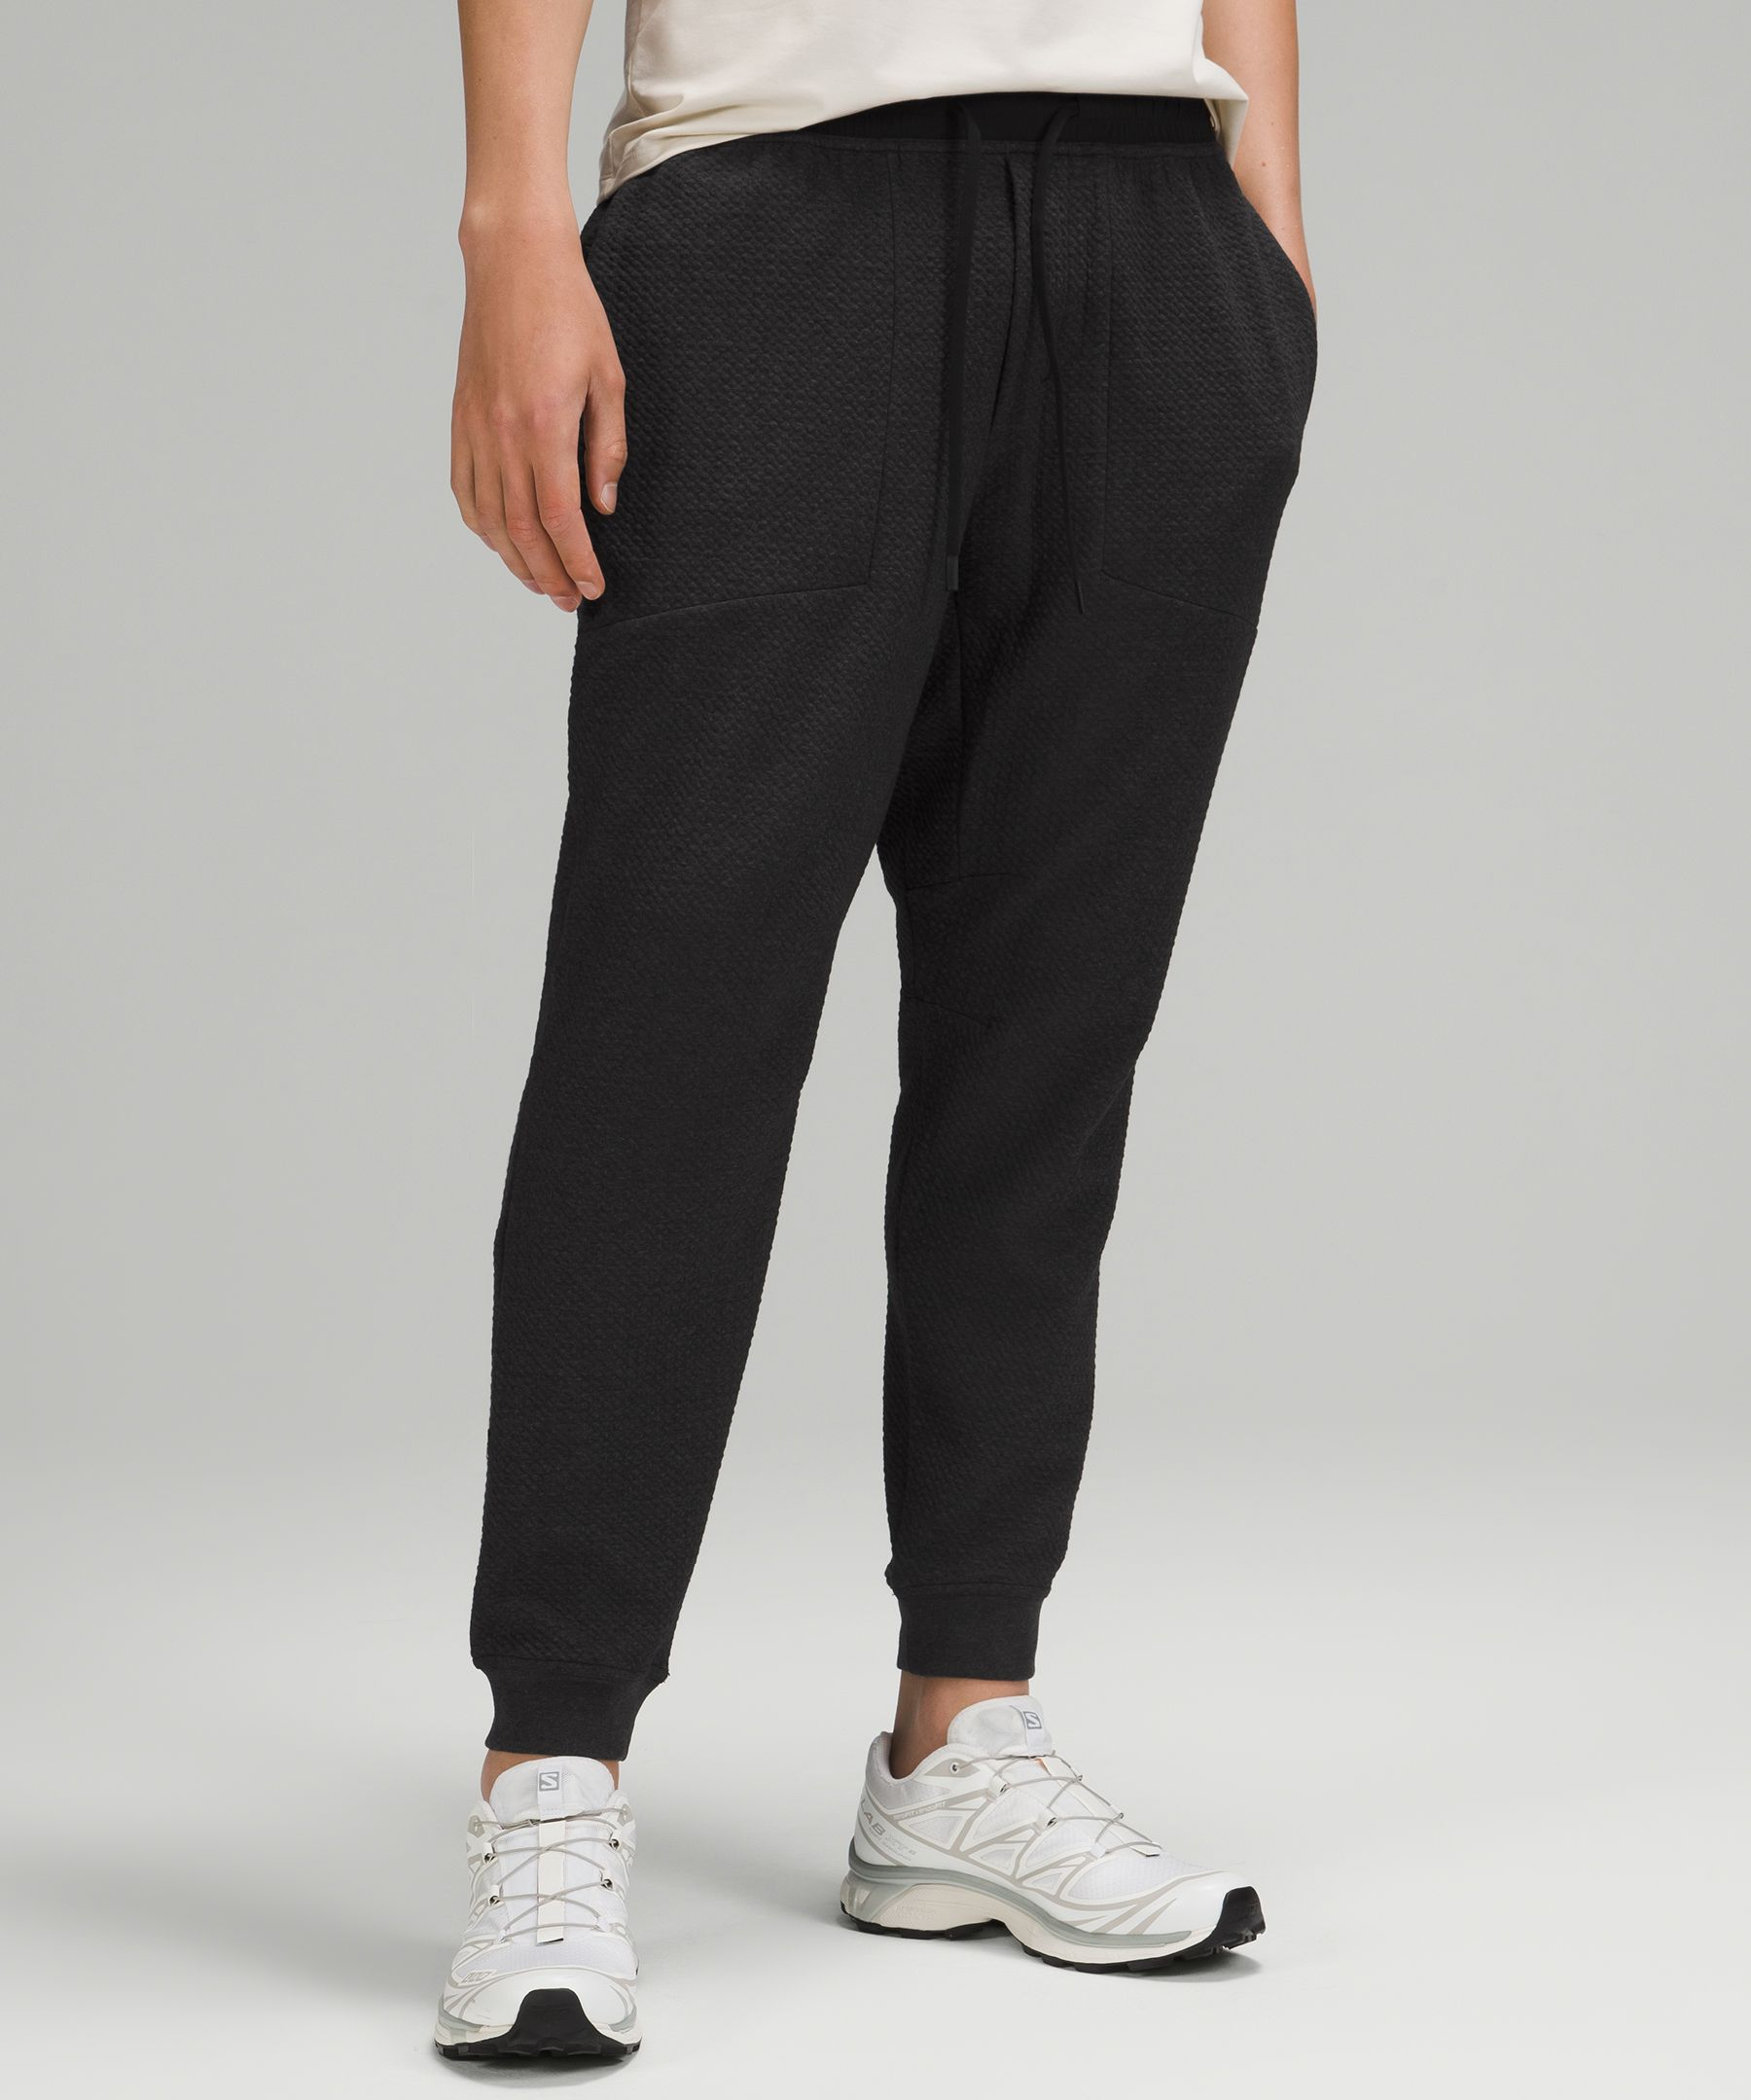 These textured joggers feel  soft against your skin,  whether you\\\'re warming up at  the gym or hitting the streets  post workout.